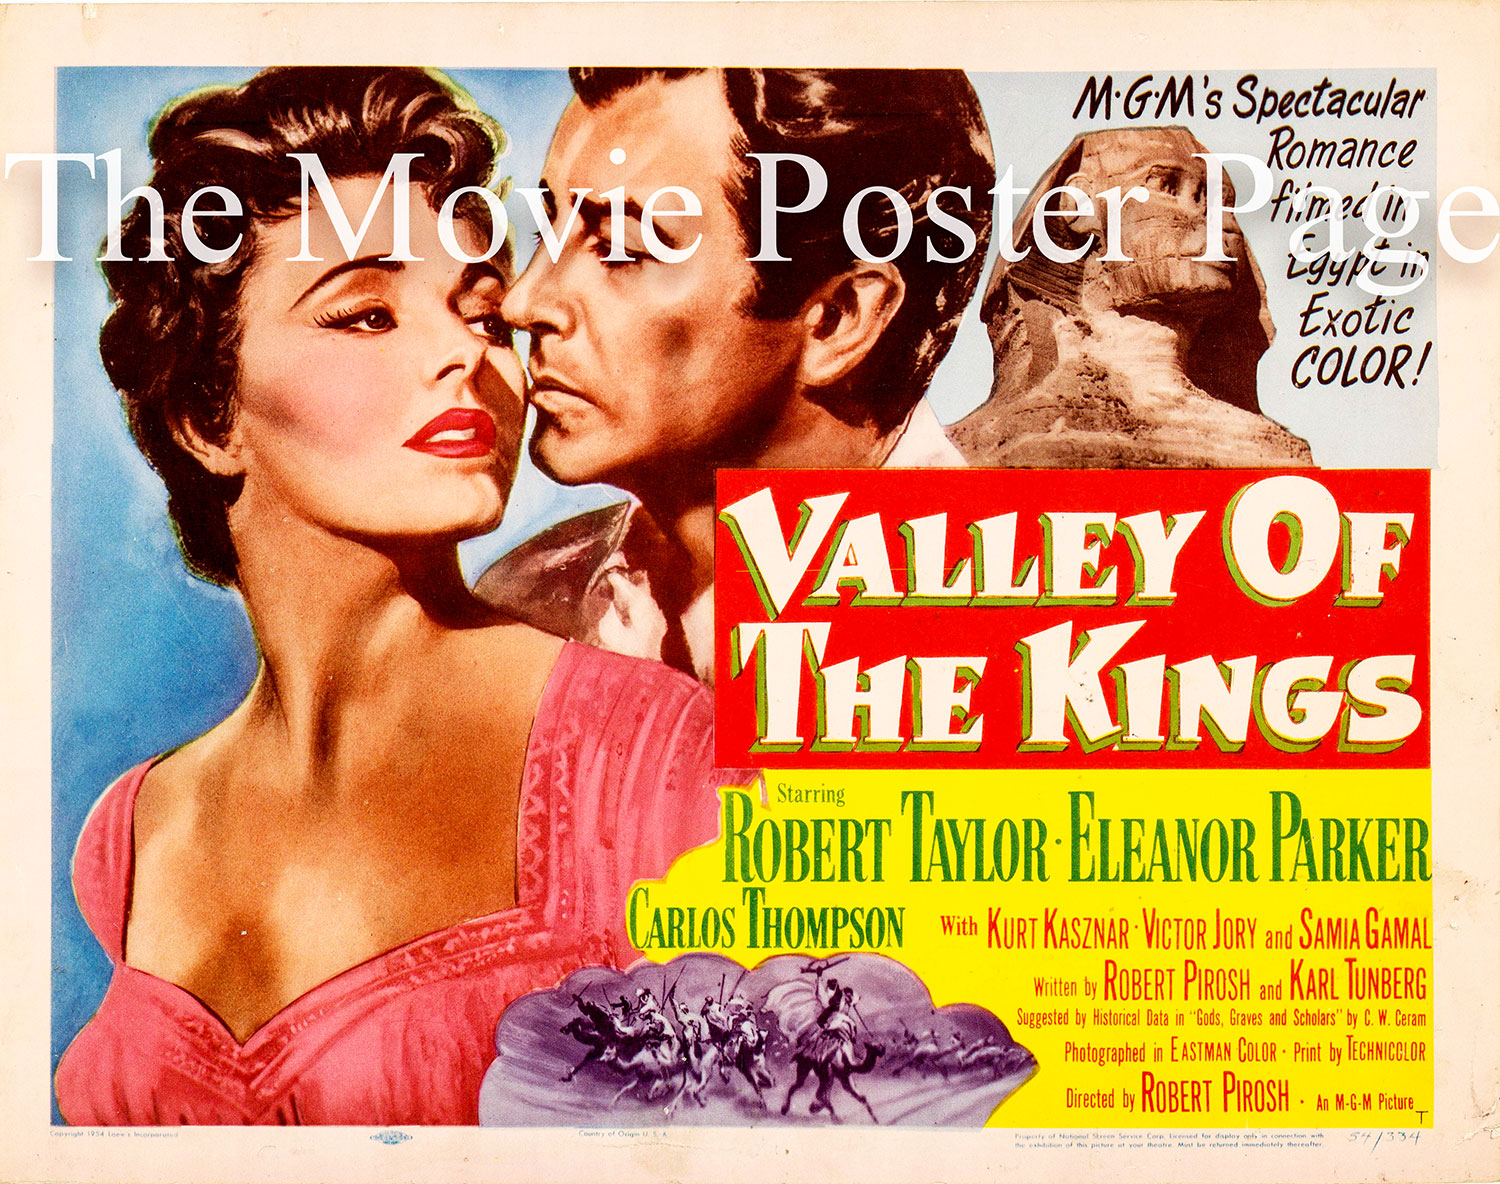 Pictured is a US lobby card for the 1954 Robert Pirosh film Valley of the Kings starring Robert Taylor.